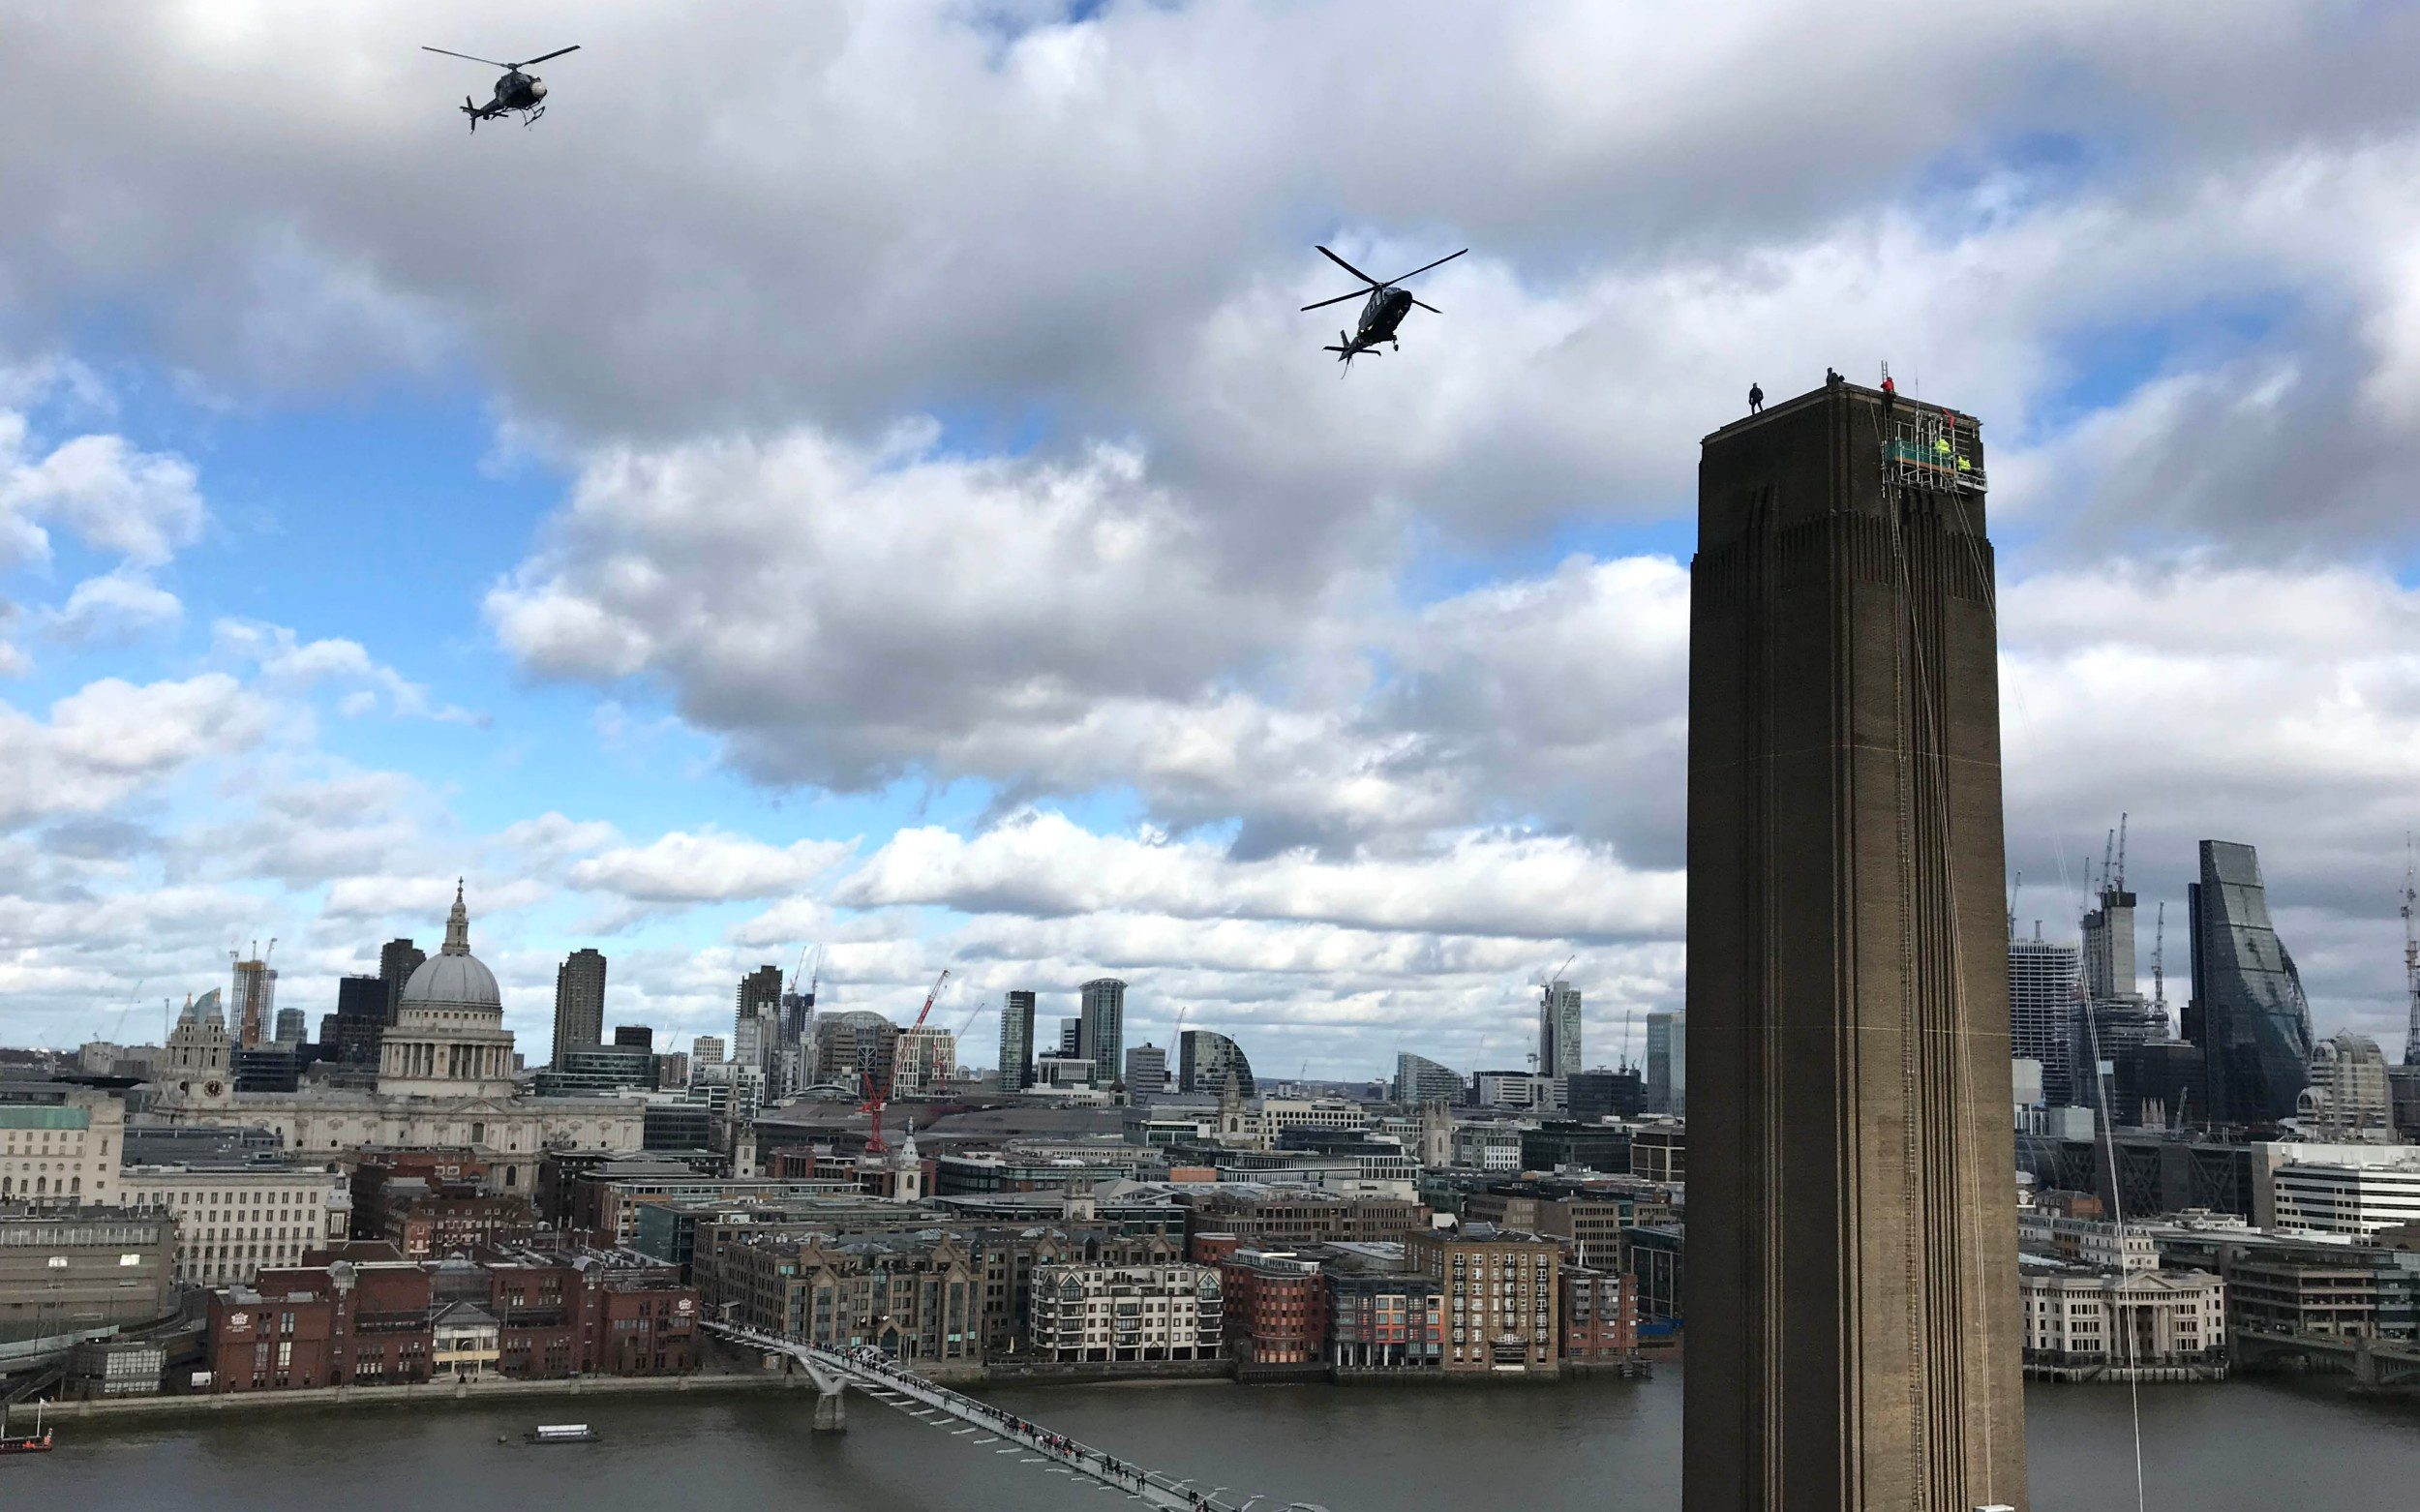 Tom Cruise climbs the Tate Modern tower filming a stunt